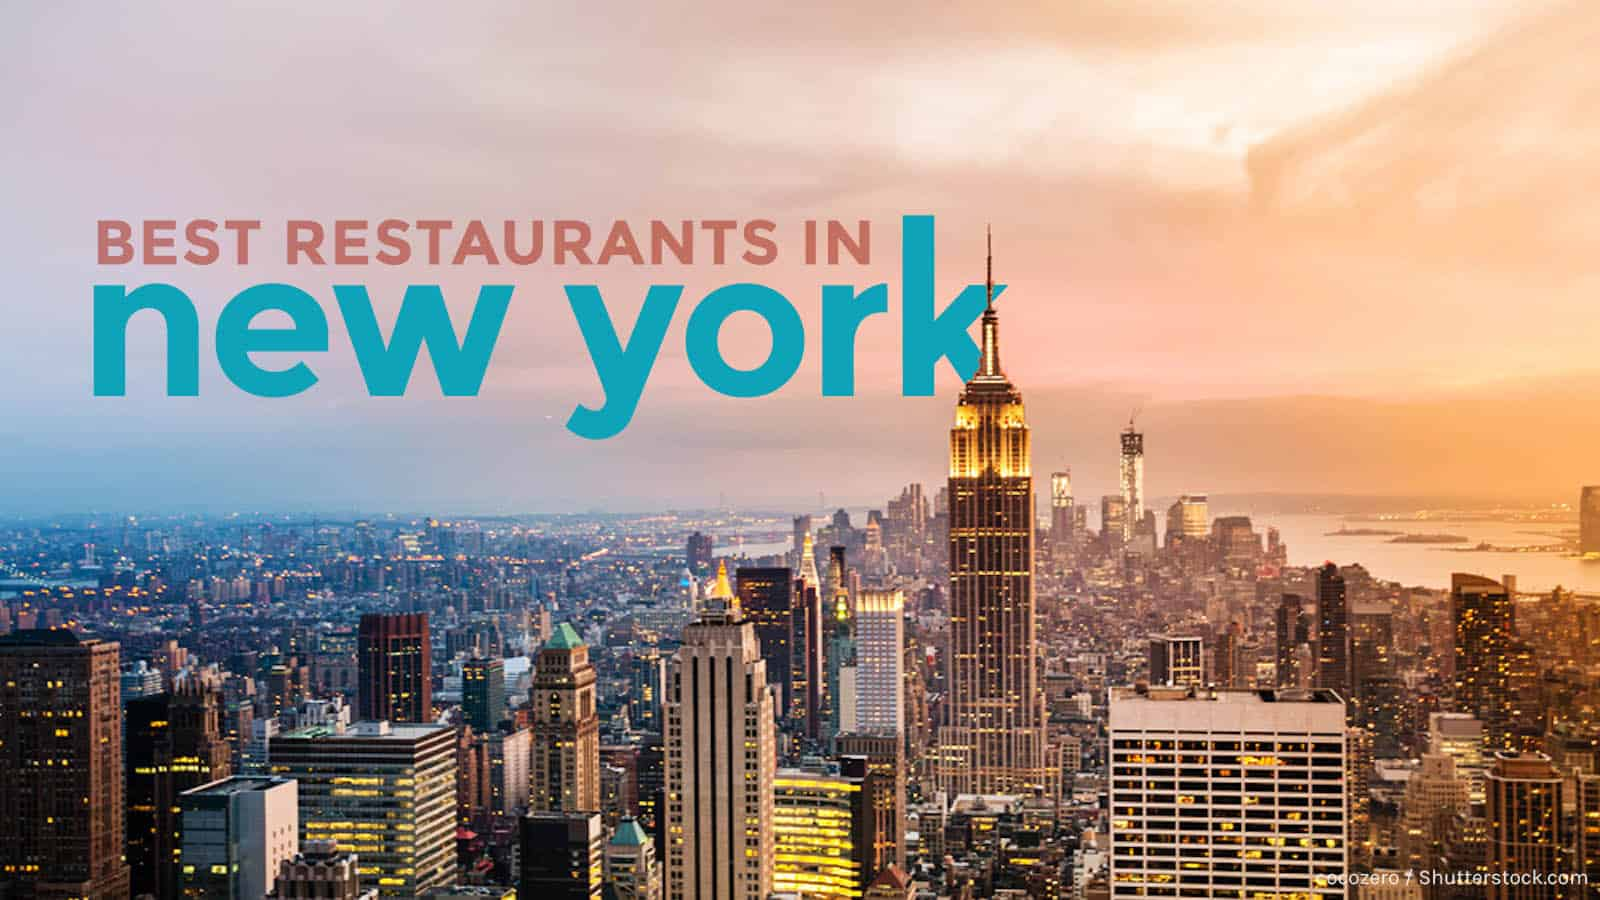 JustFly Reviews: Top 10 Best Restaurants in New York City